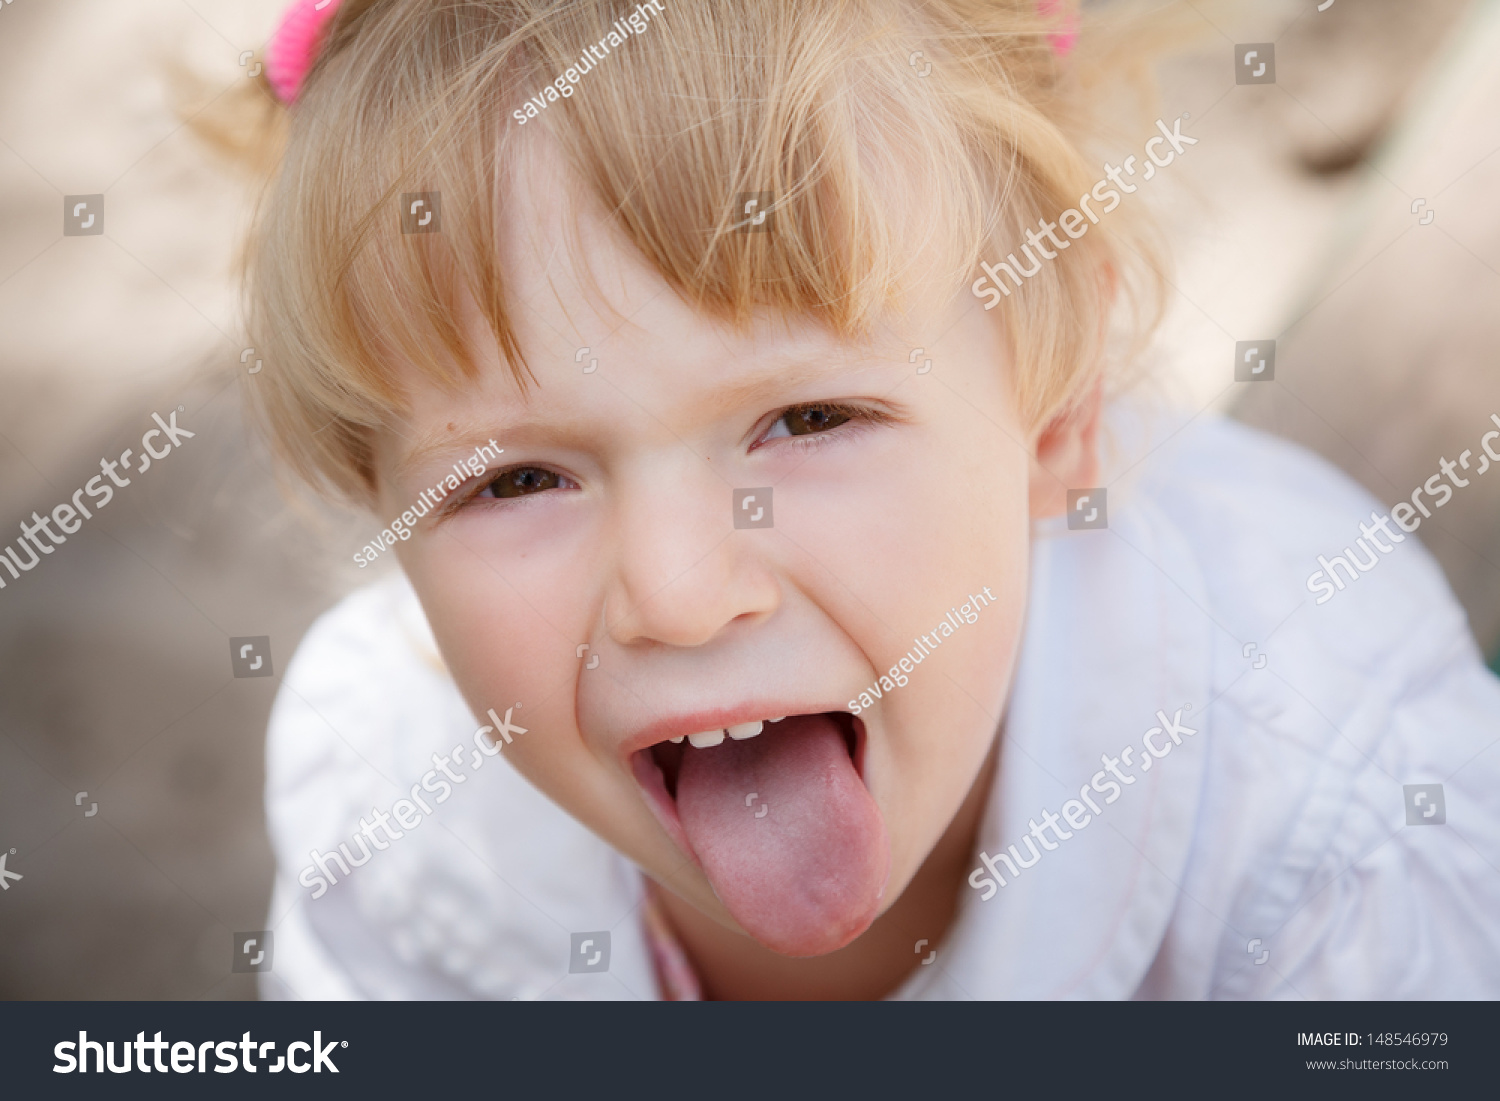 little girl tongue close up